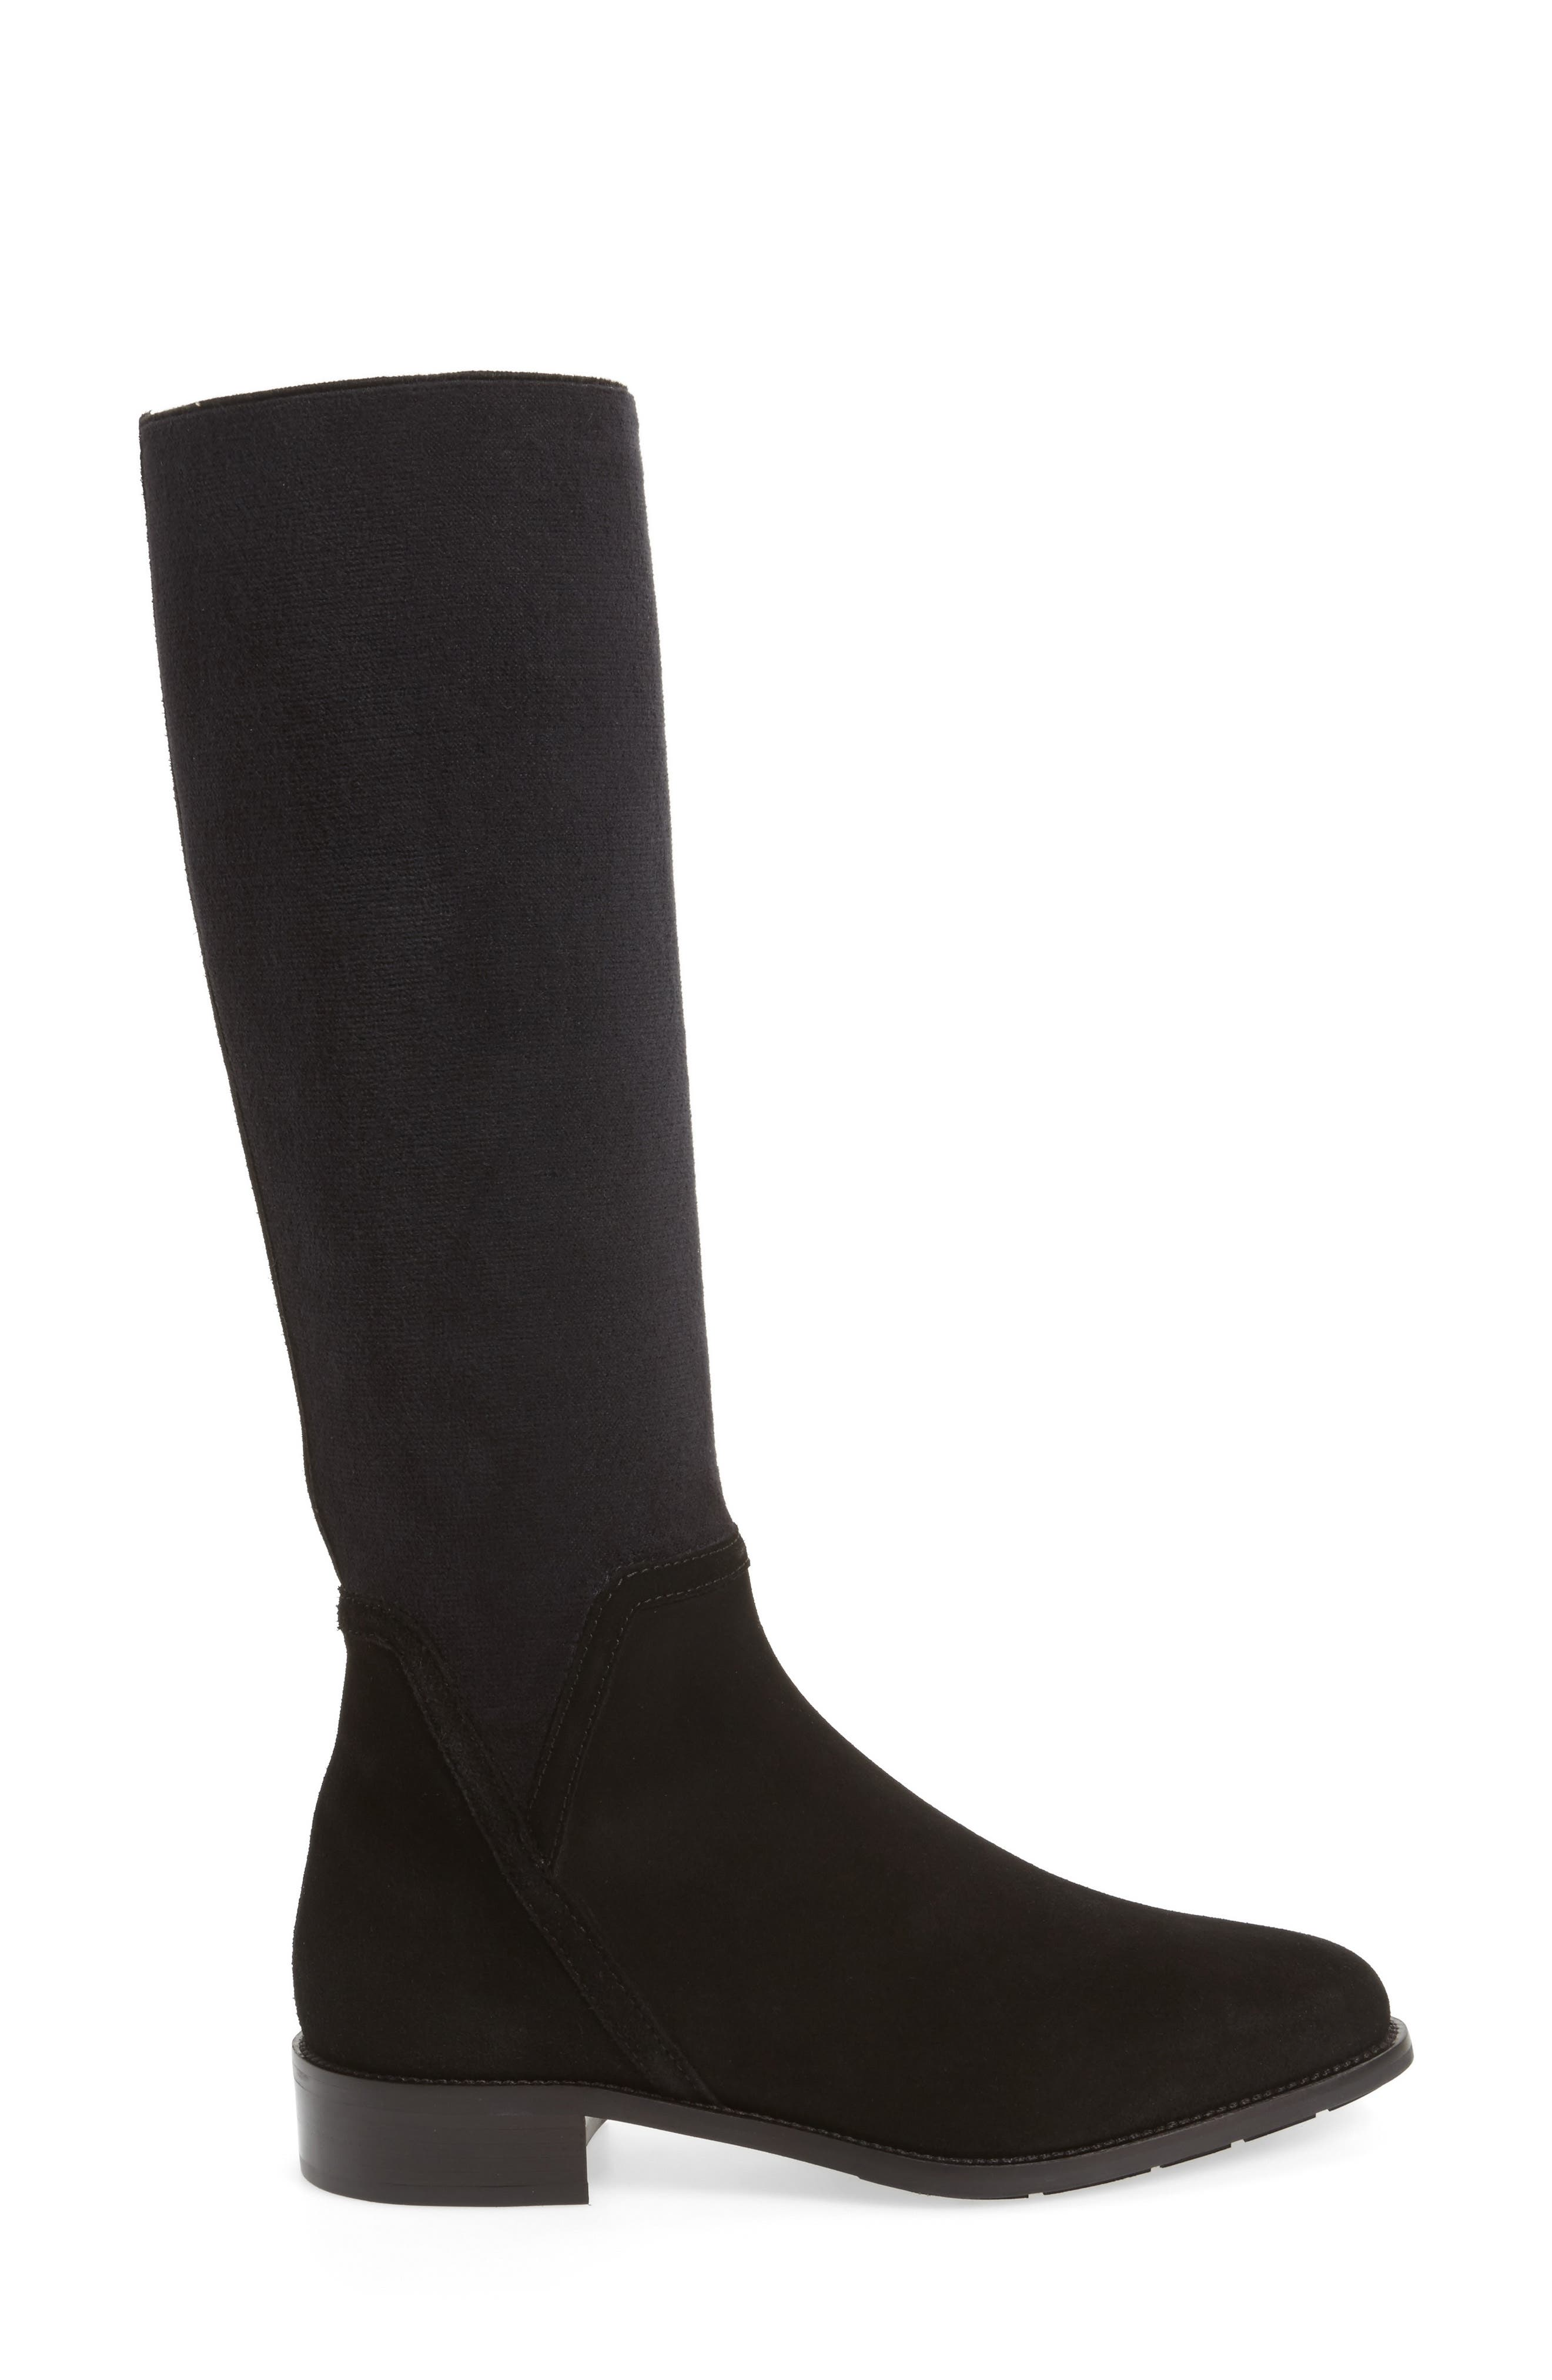 Nicolette Knee High Weatherproof Boot,                             Alternate thumbnail 3, color,                             001